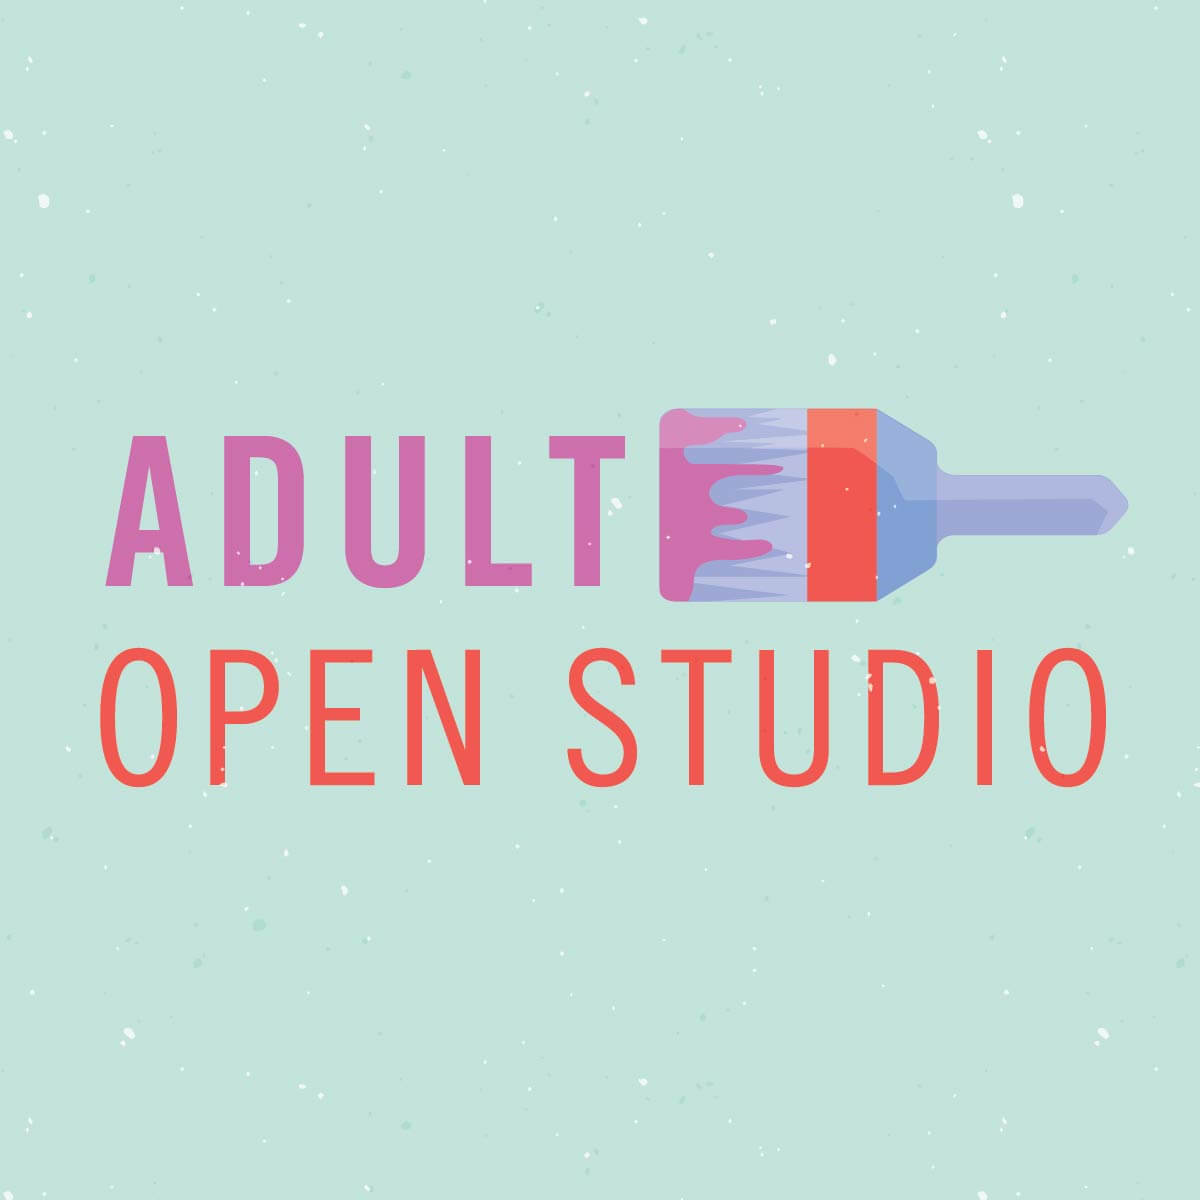 adult open studio-01